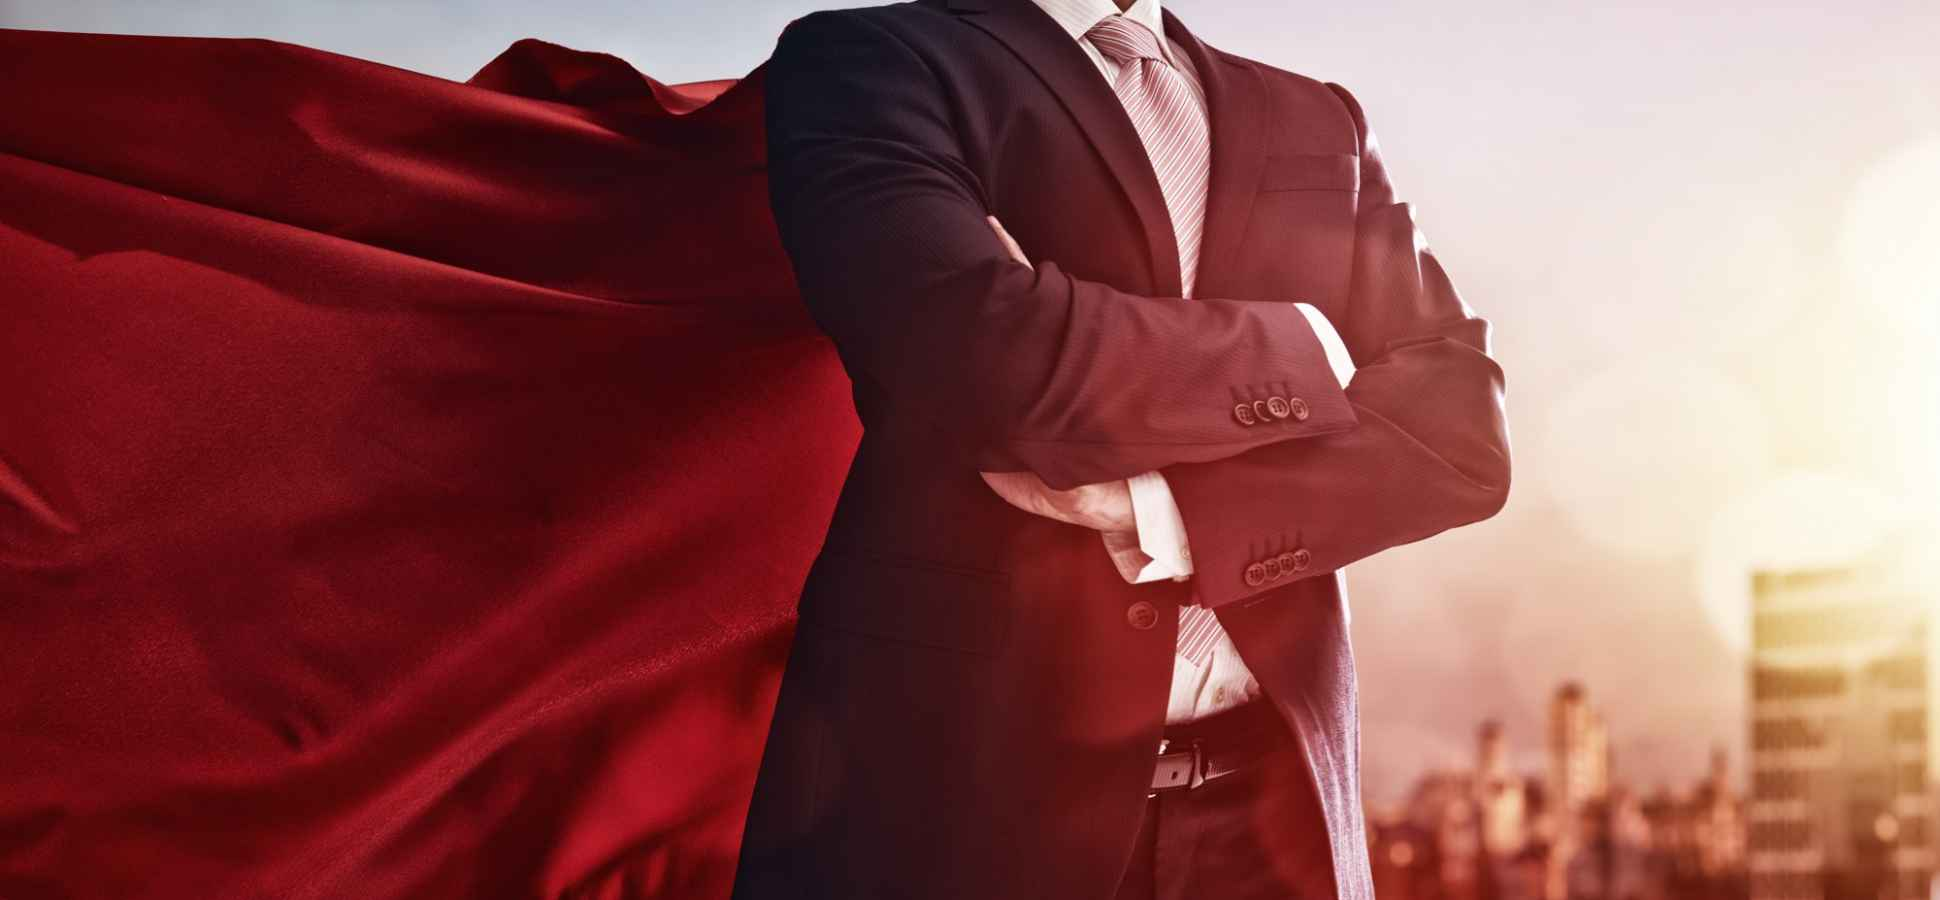 7 Ways that Driven and Successful Servant Leaders Stand Out